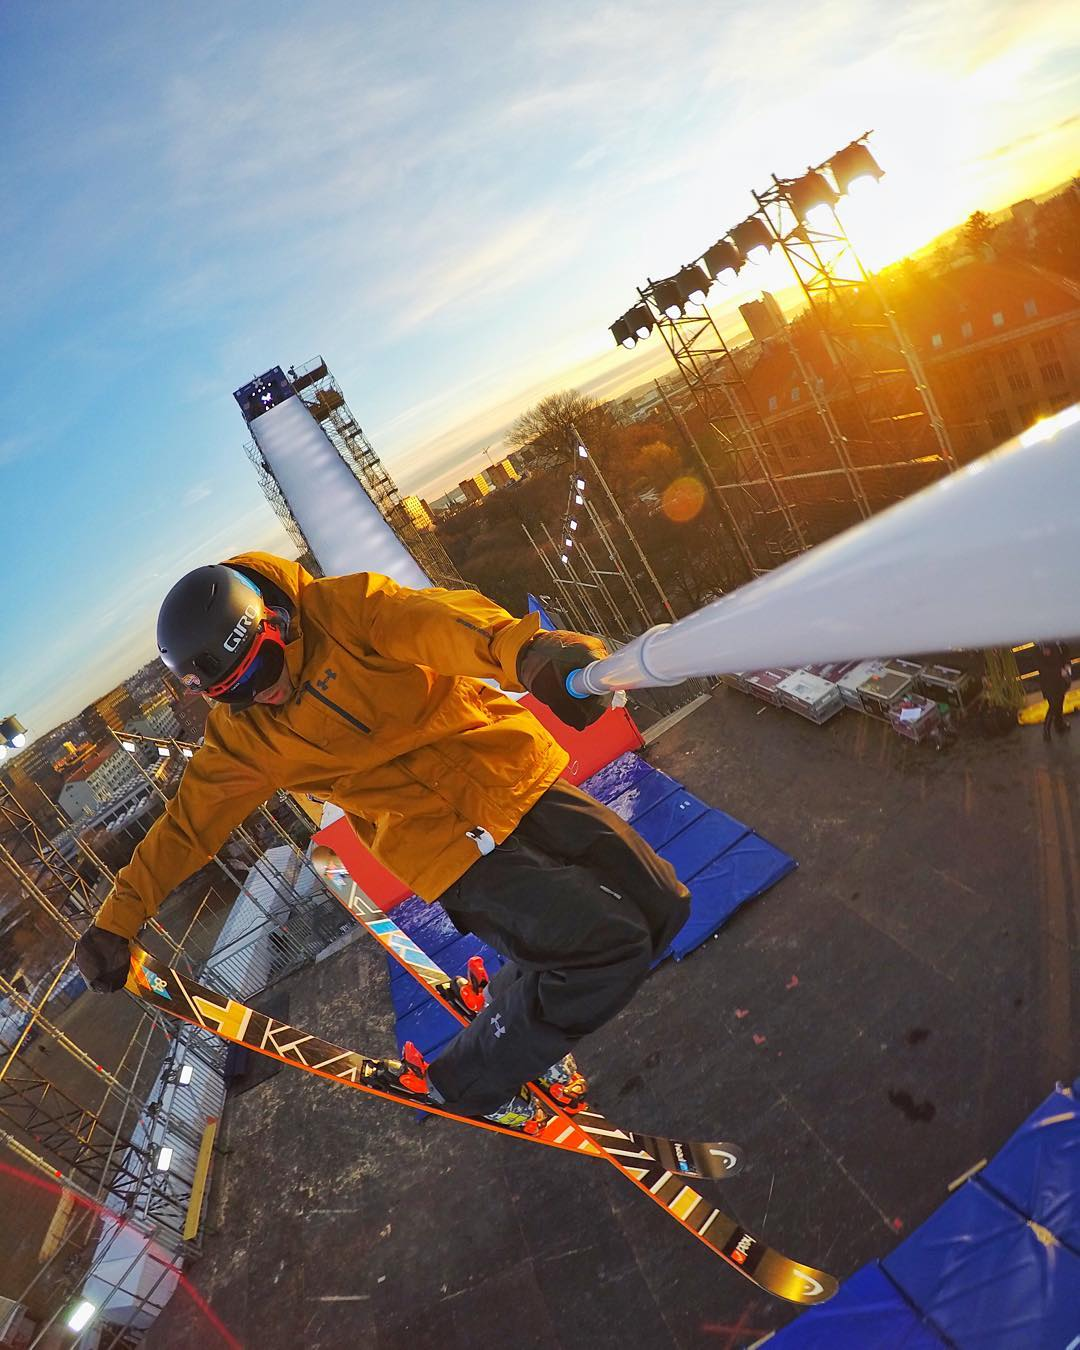 @noah_wallace warming up for Men's Ski Big Air at @xgames Oslo. GoPro HERO4 | GoPole Reach #gopro #gopole #skiing #xgames #xgamesoslo @xgamesosloo